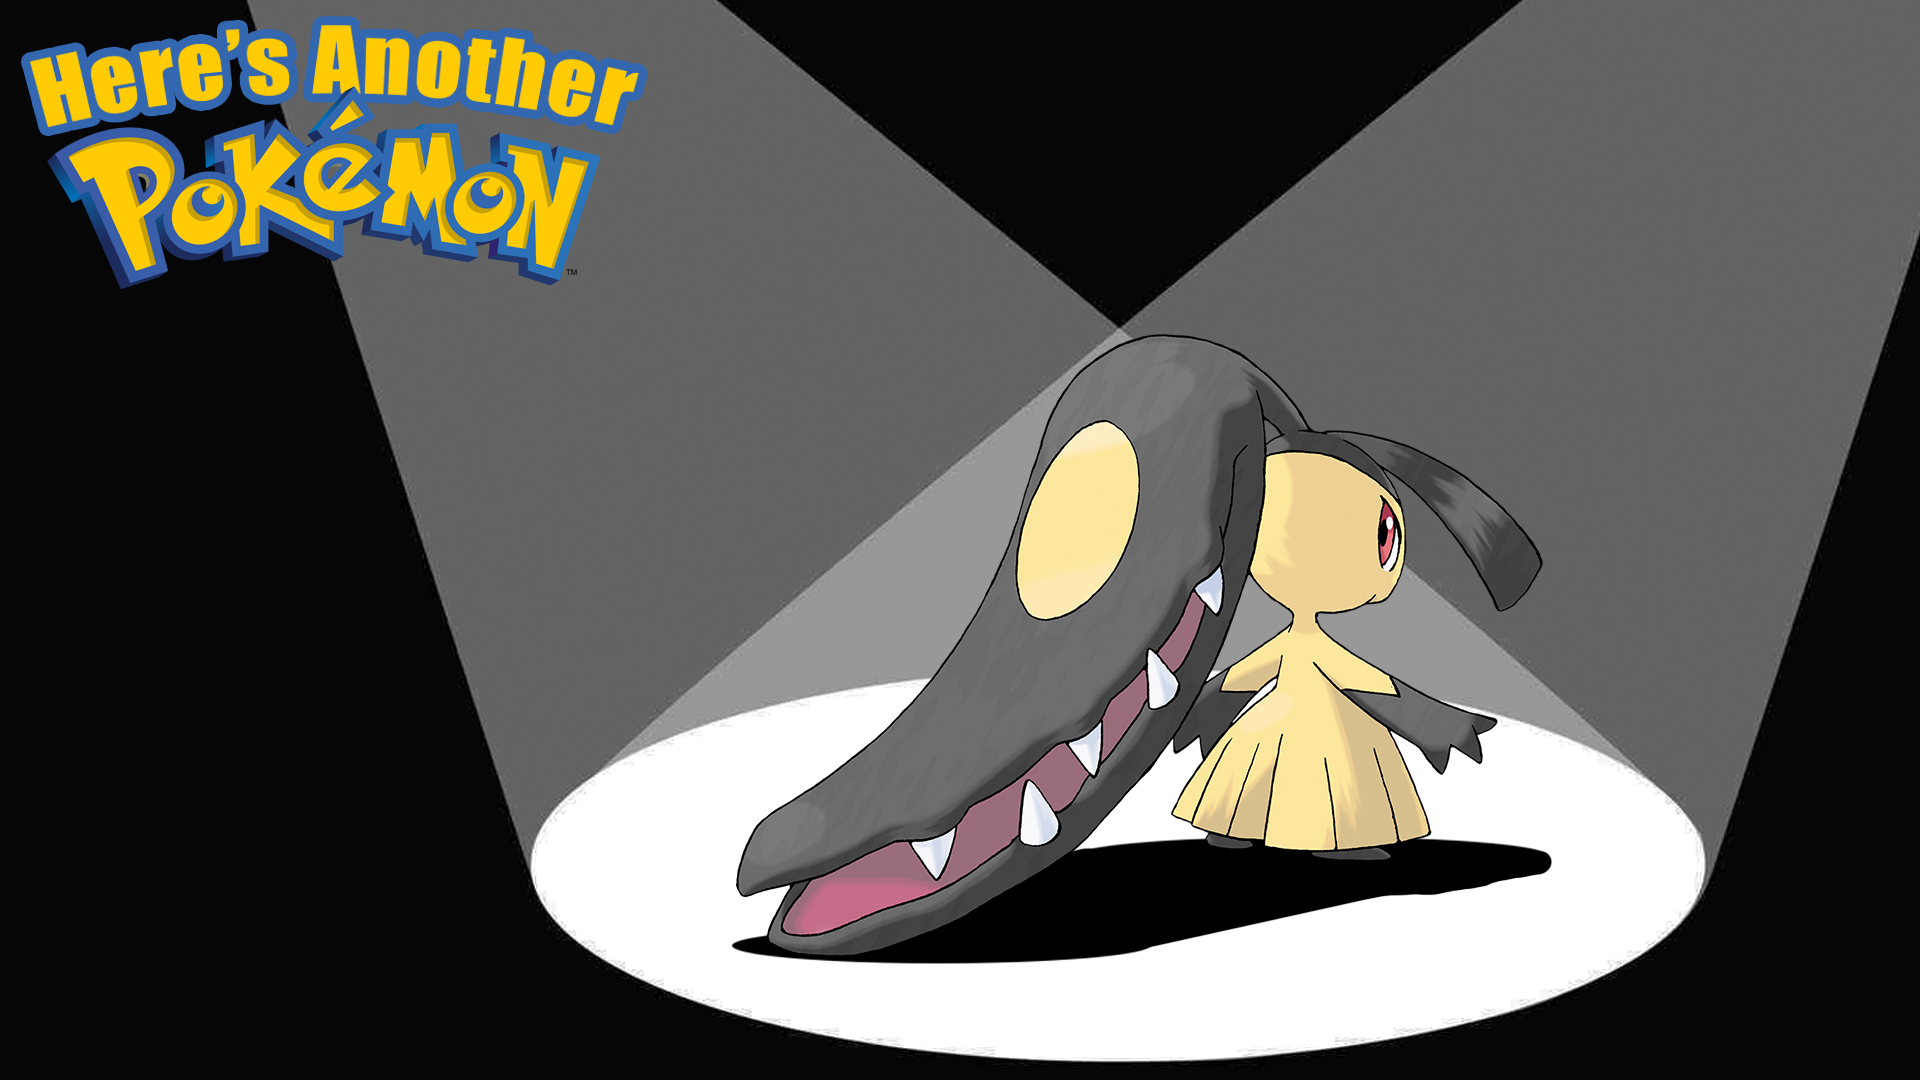 Mawile Will Eat You Up In One Big Chomp